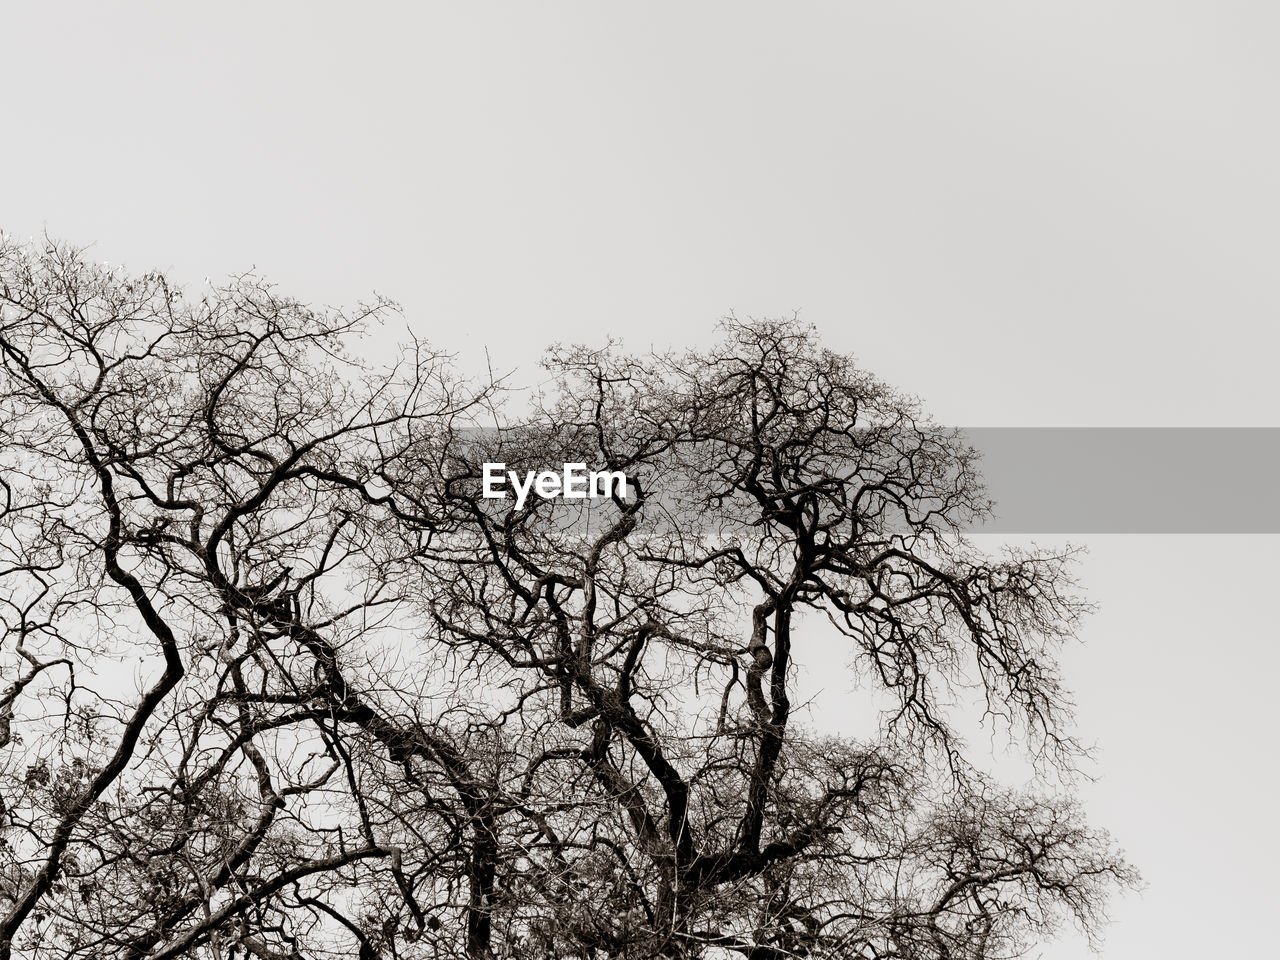 sky, tree, plant, clear sky, low angle view, branch, no people, bare tree, nature, tranquility, day, copy space, beauty in nature, outdoors, growth, scenics - nature, tranquil scene, silhouette, non-urban scene, tree canopy